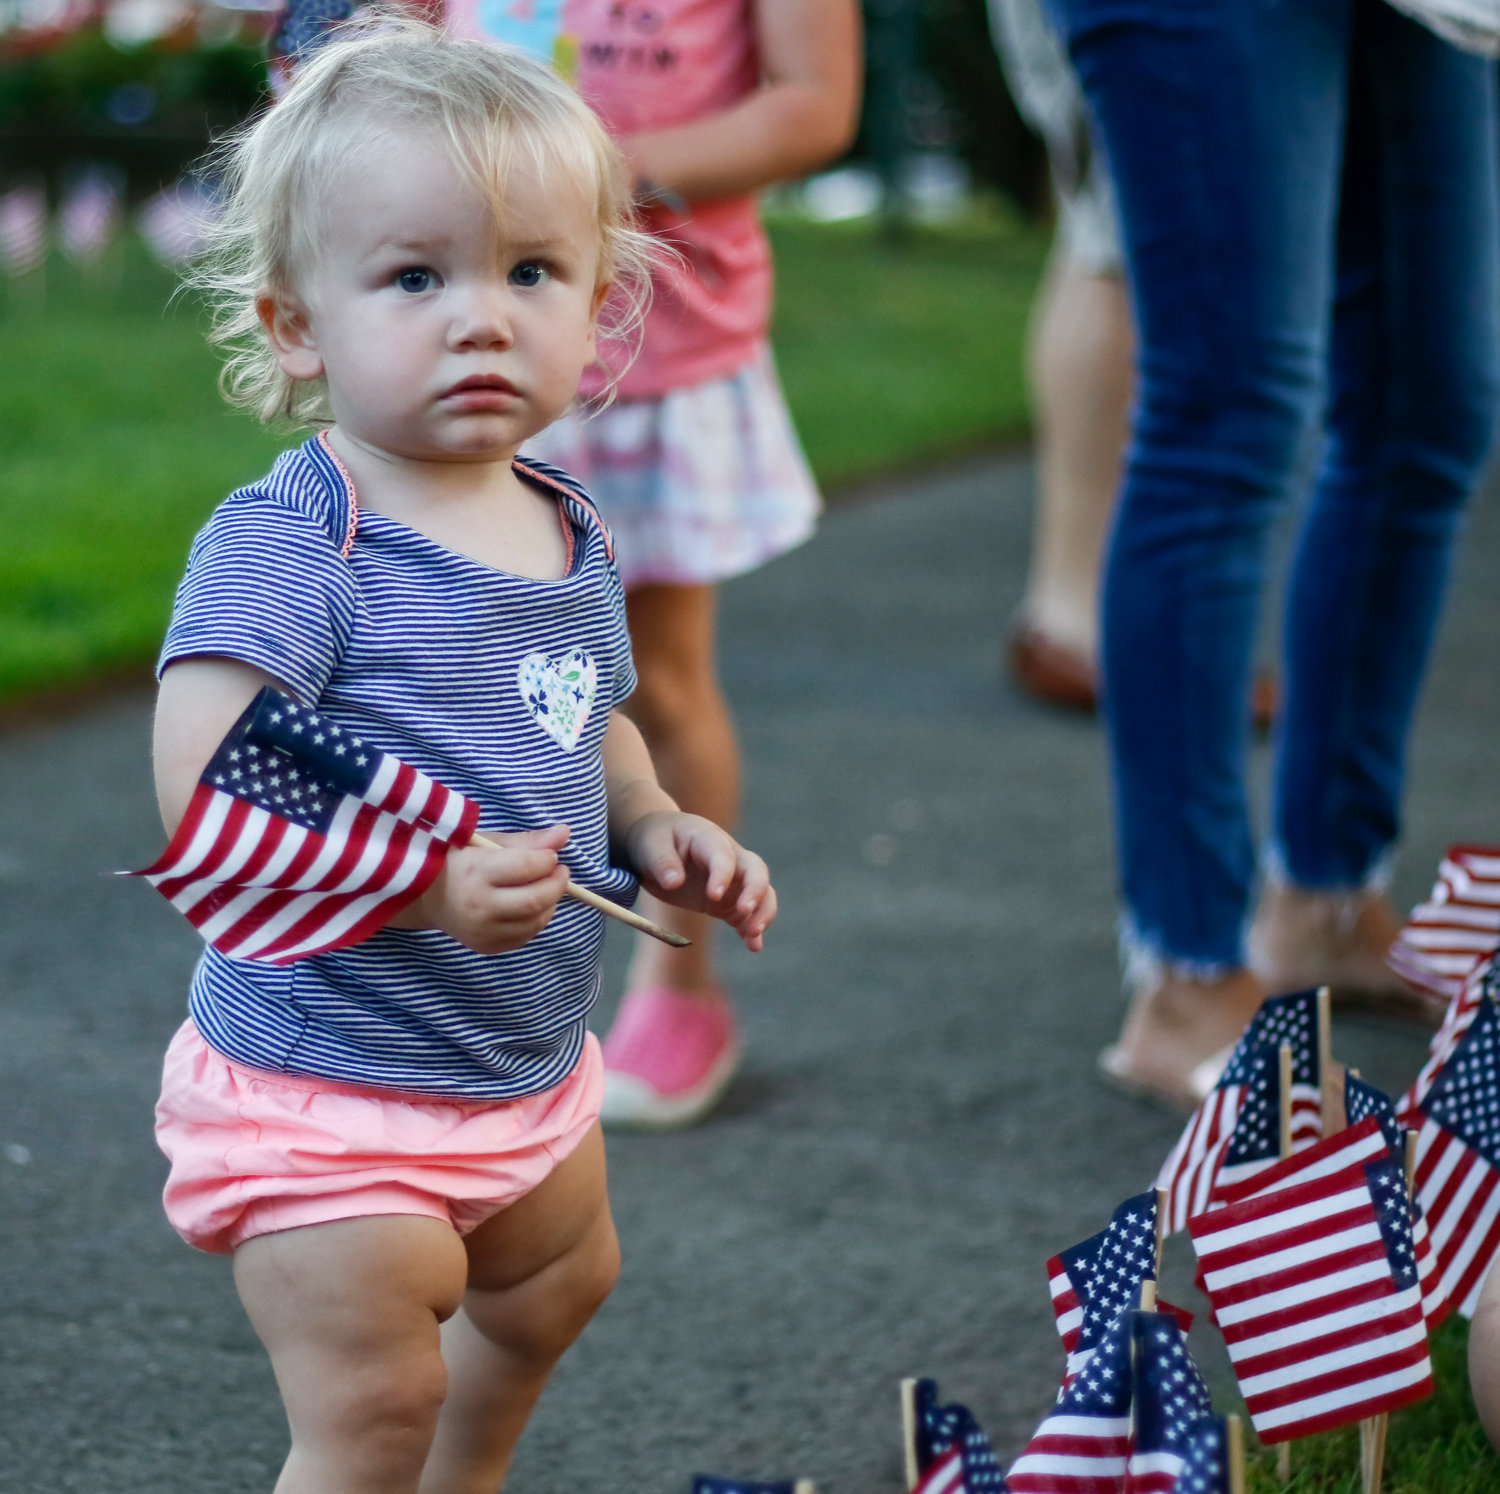 The youngest helper to place a flag was 18-month-old Mary Orosz.